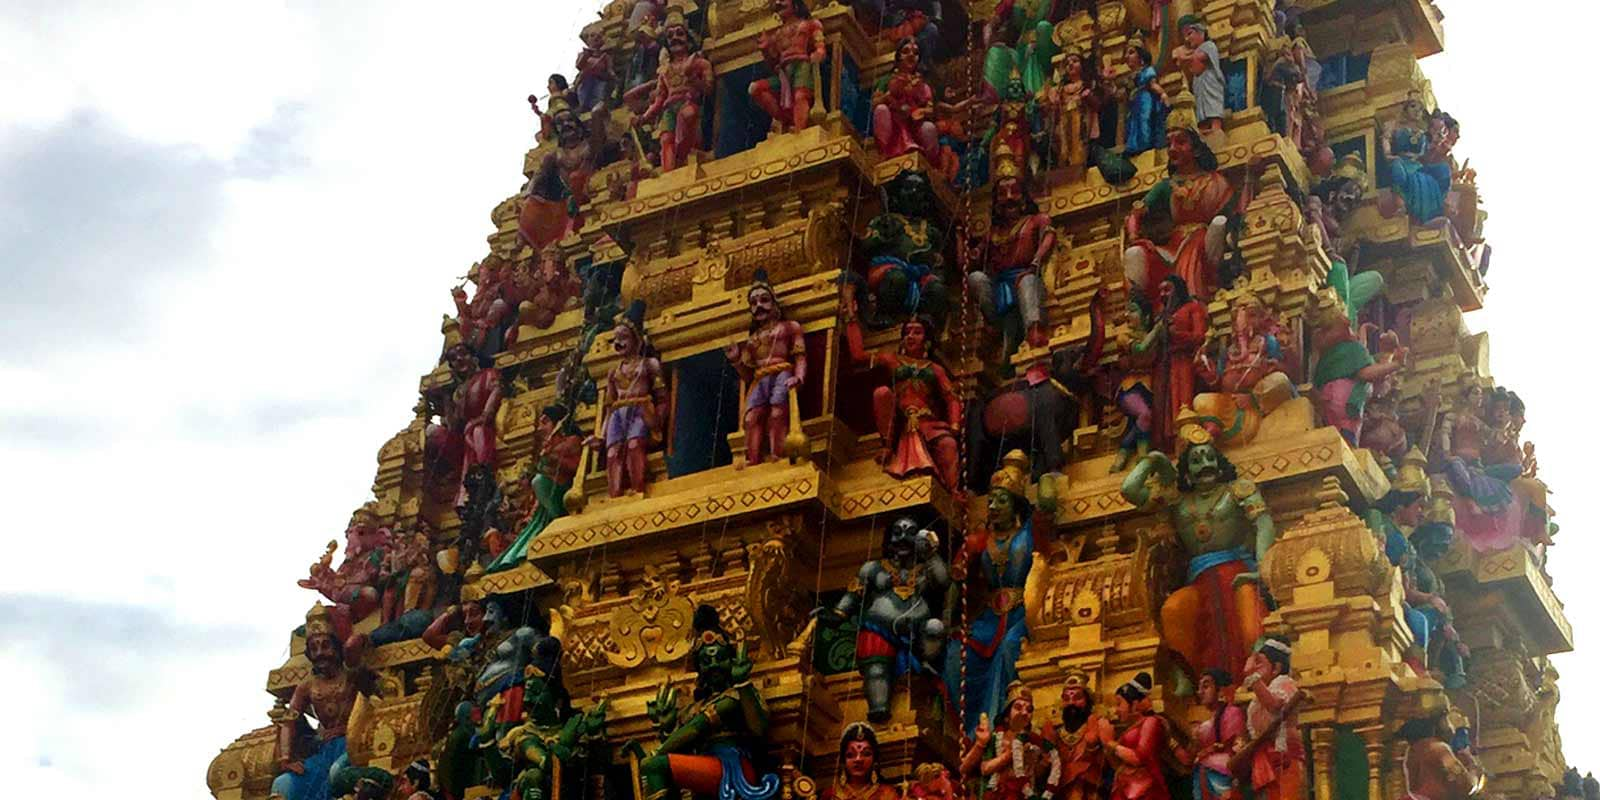 Explore colorful Buddhist and Hindu temples on a tuk tuk safari across Colombo, Sri Lanka. Find out what else you'll see on this fun tour!